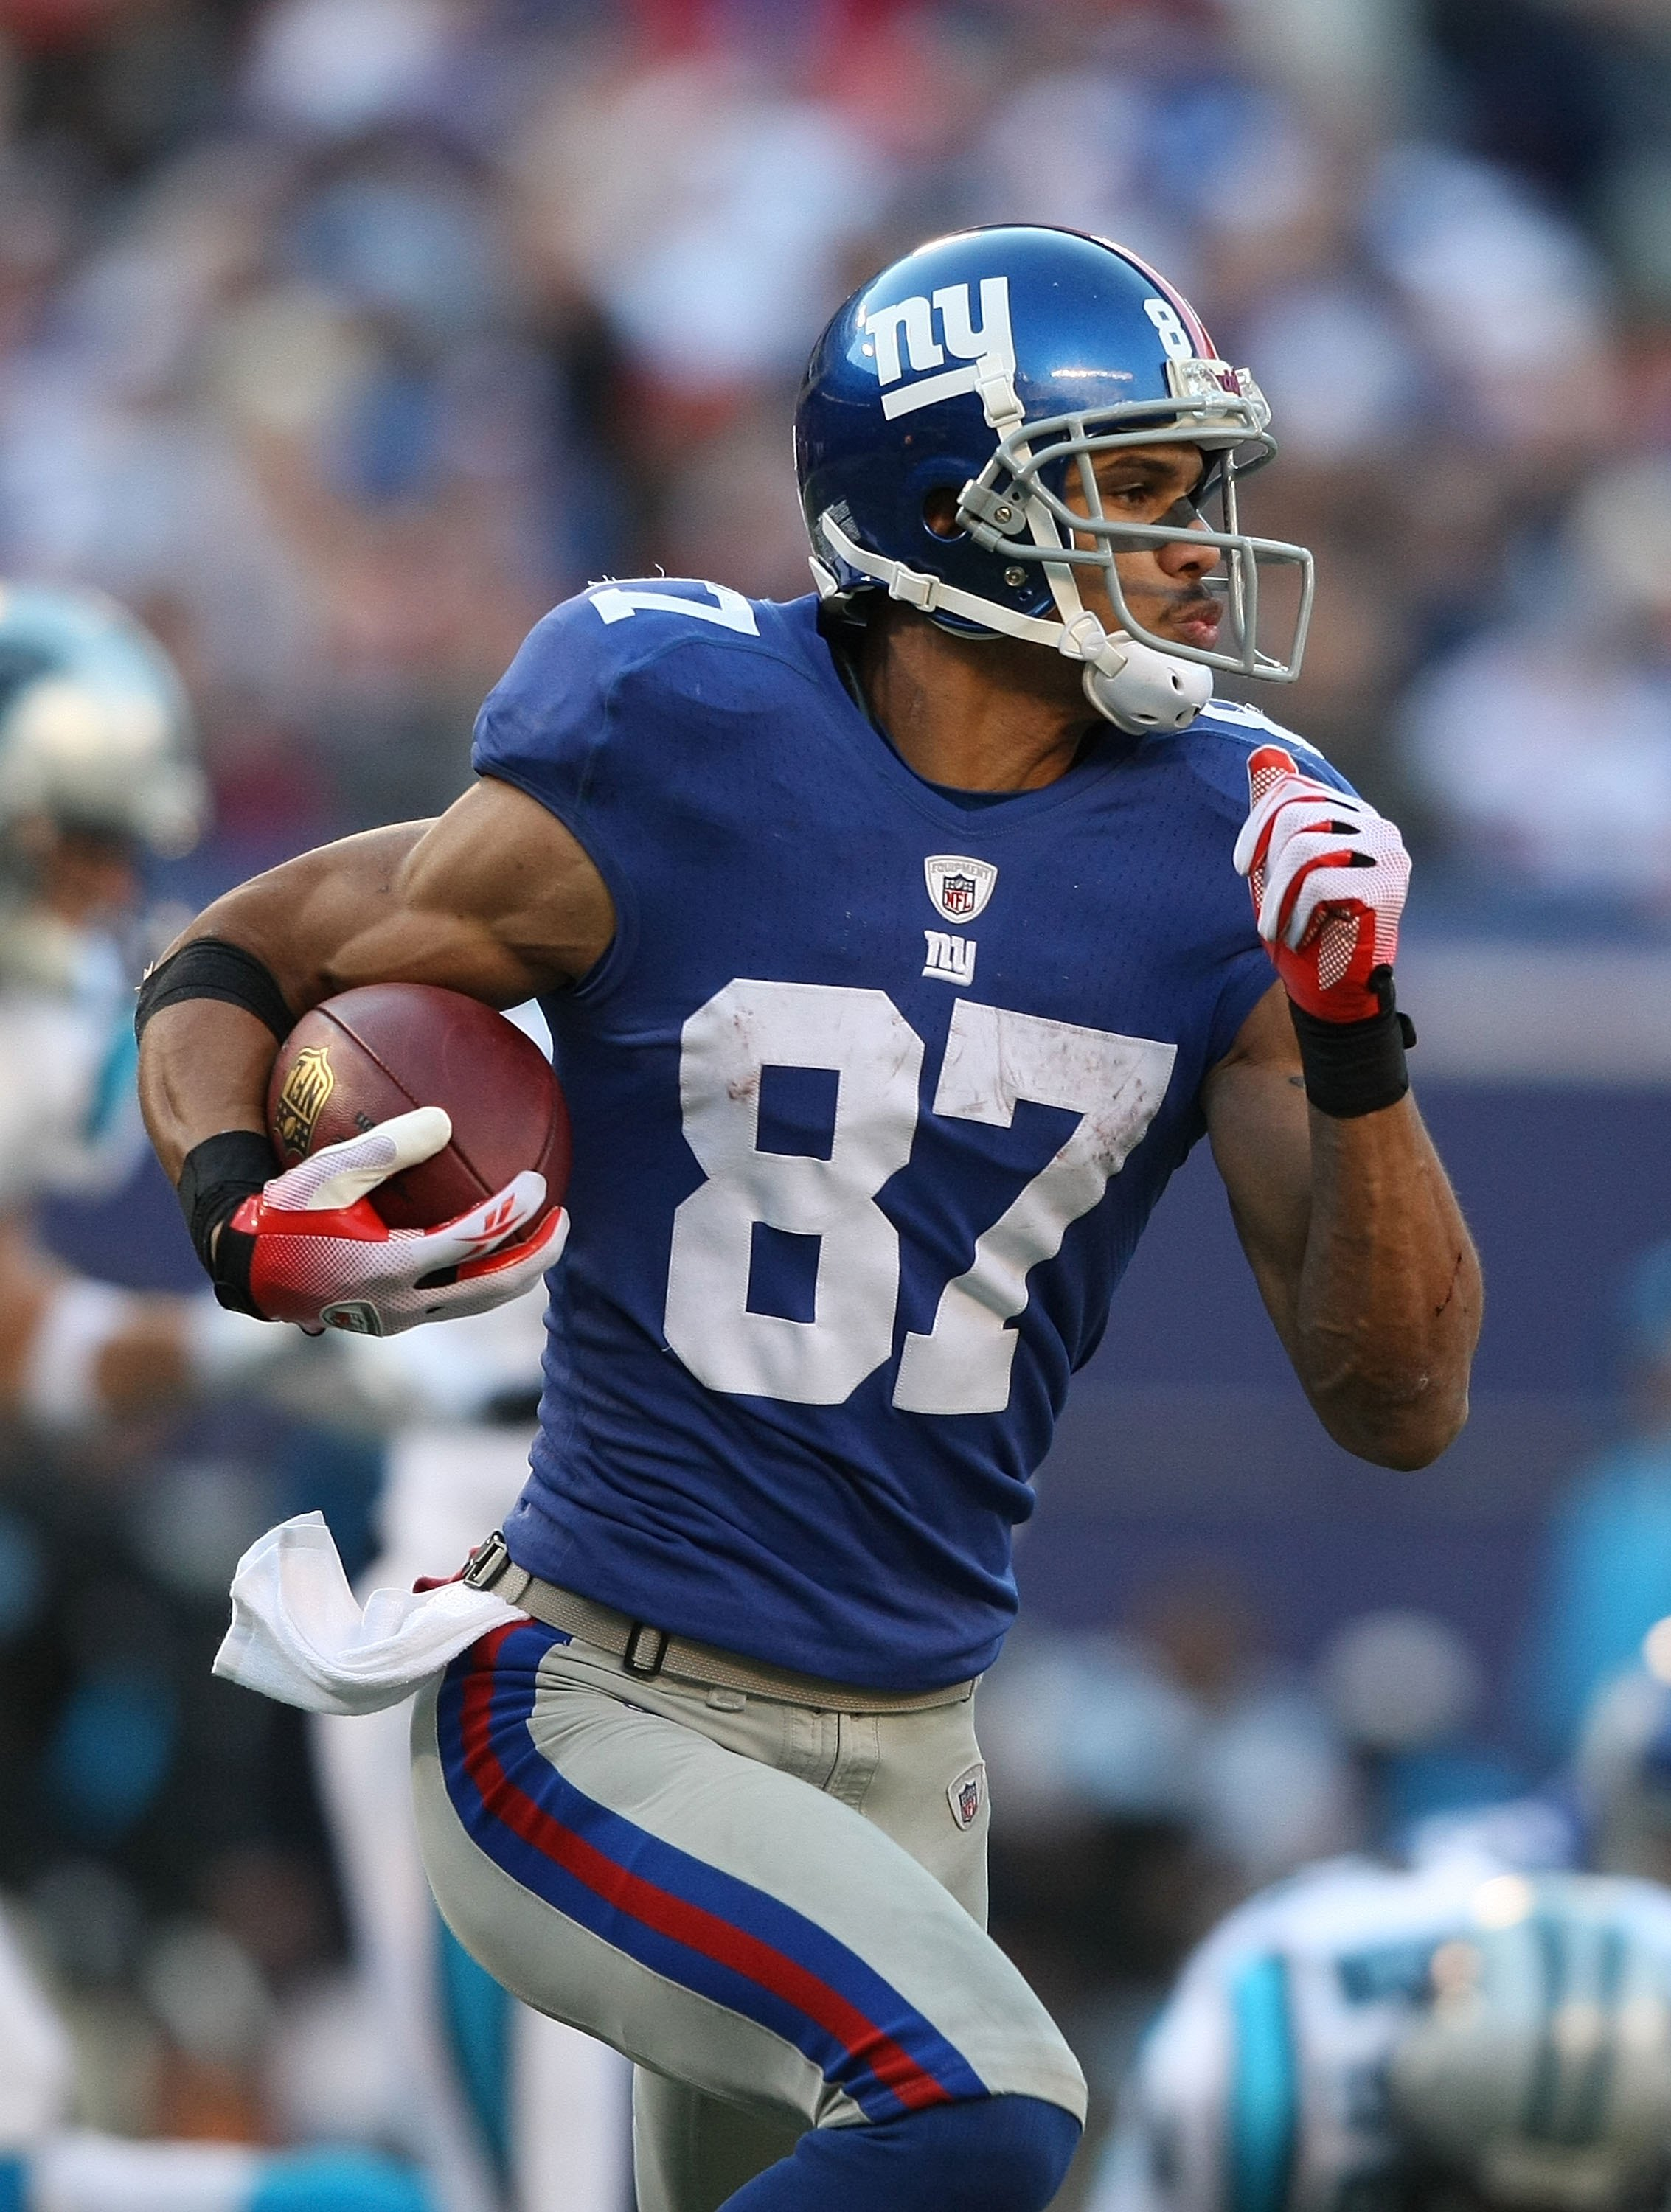 EAST RUTHERFORD, NJ - DECEMBER 27:  Domenik Hixon #87 of the New York Giants returns against the Carolina Panthers defense on a kick return at Giants Stadium on December 27, 2009 in East Rutherford, New Jersey.  (Photo by Nick Laham/Getty Images)